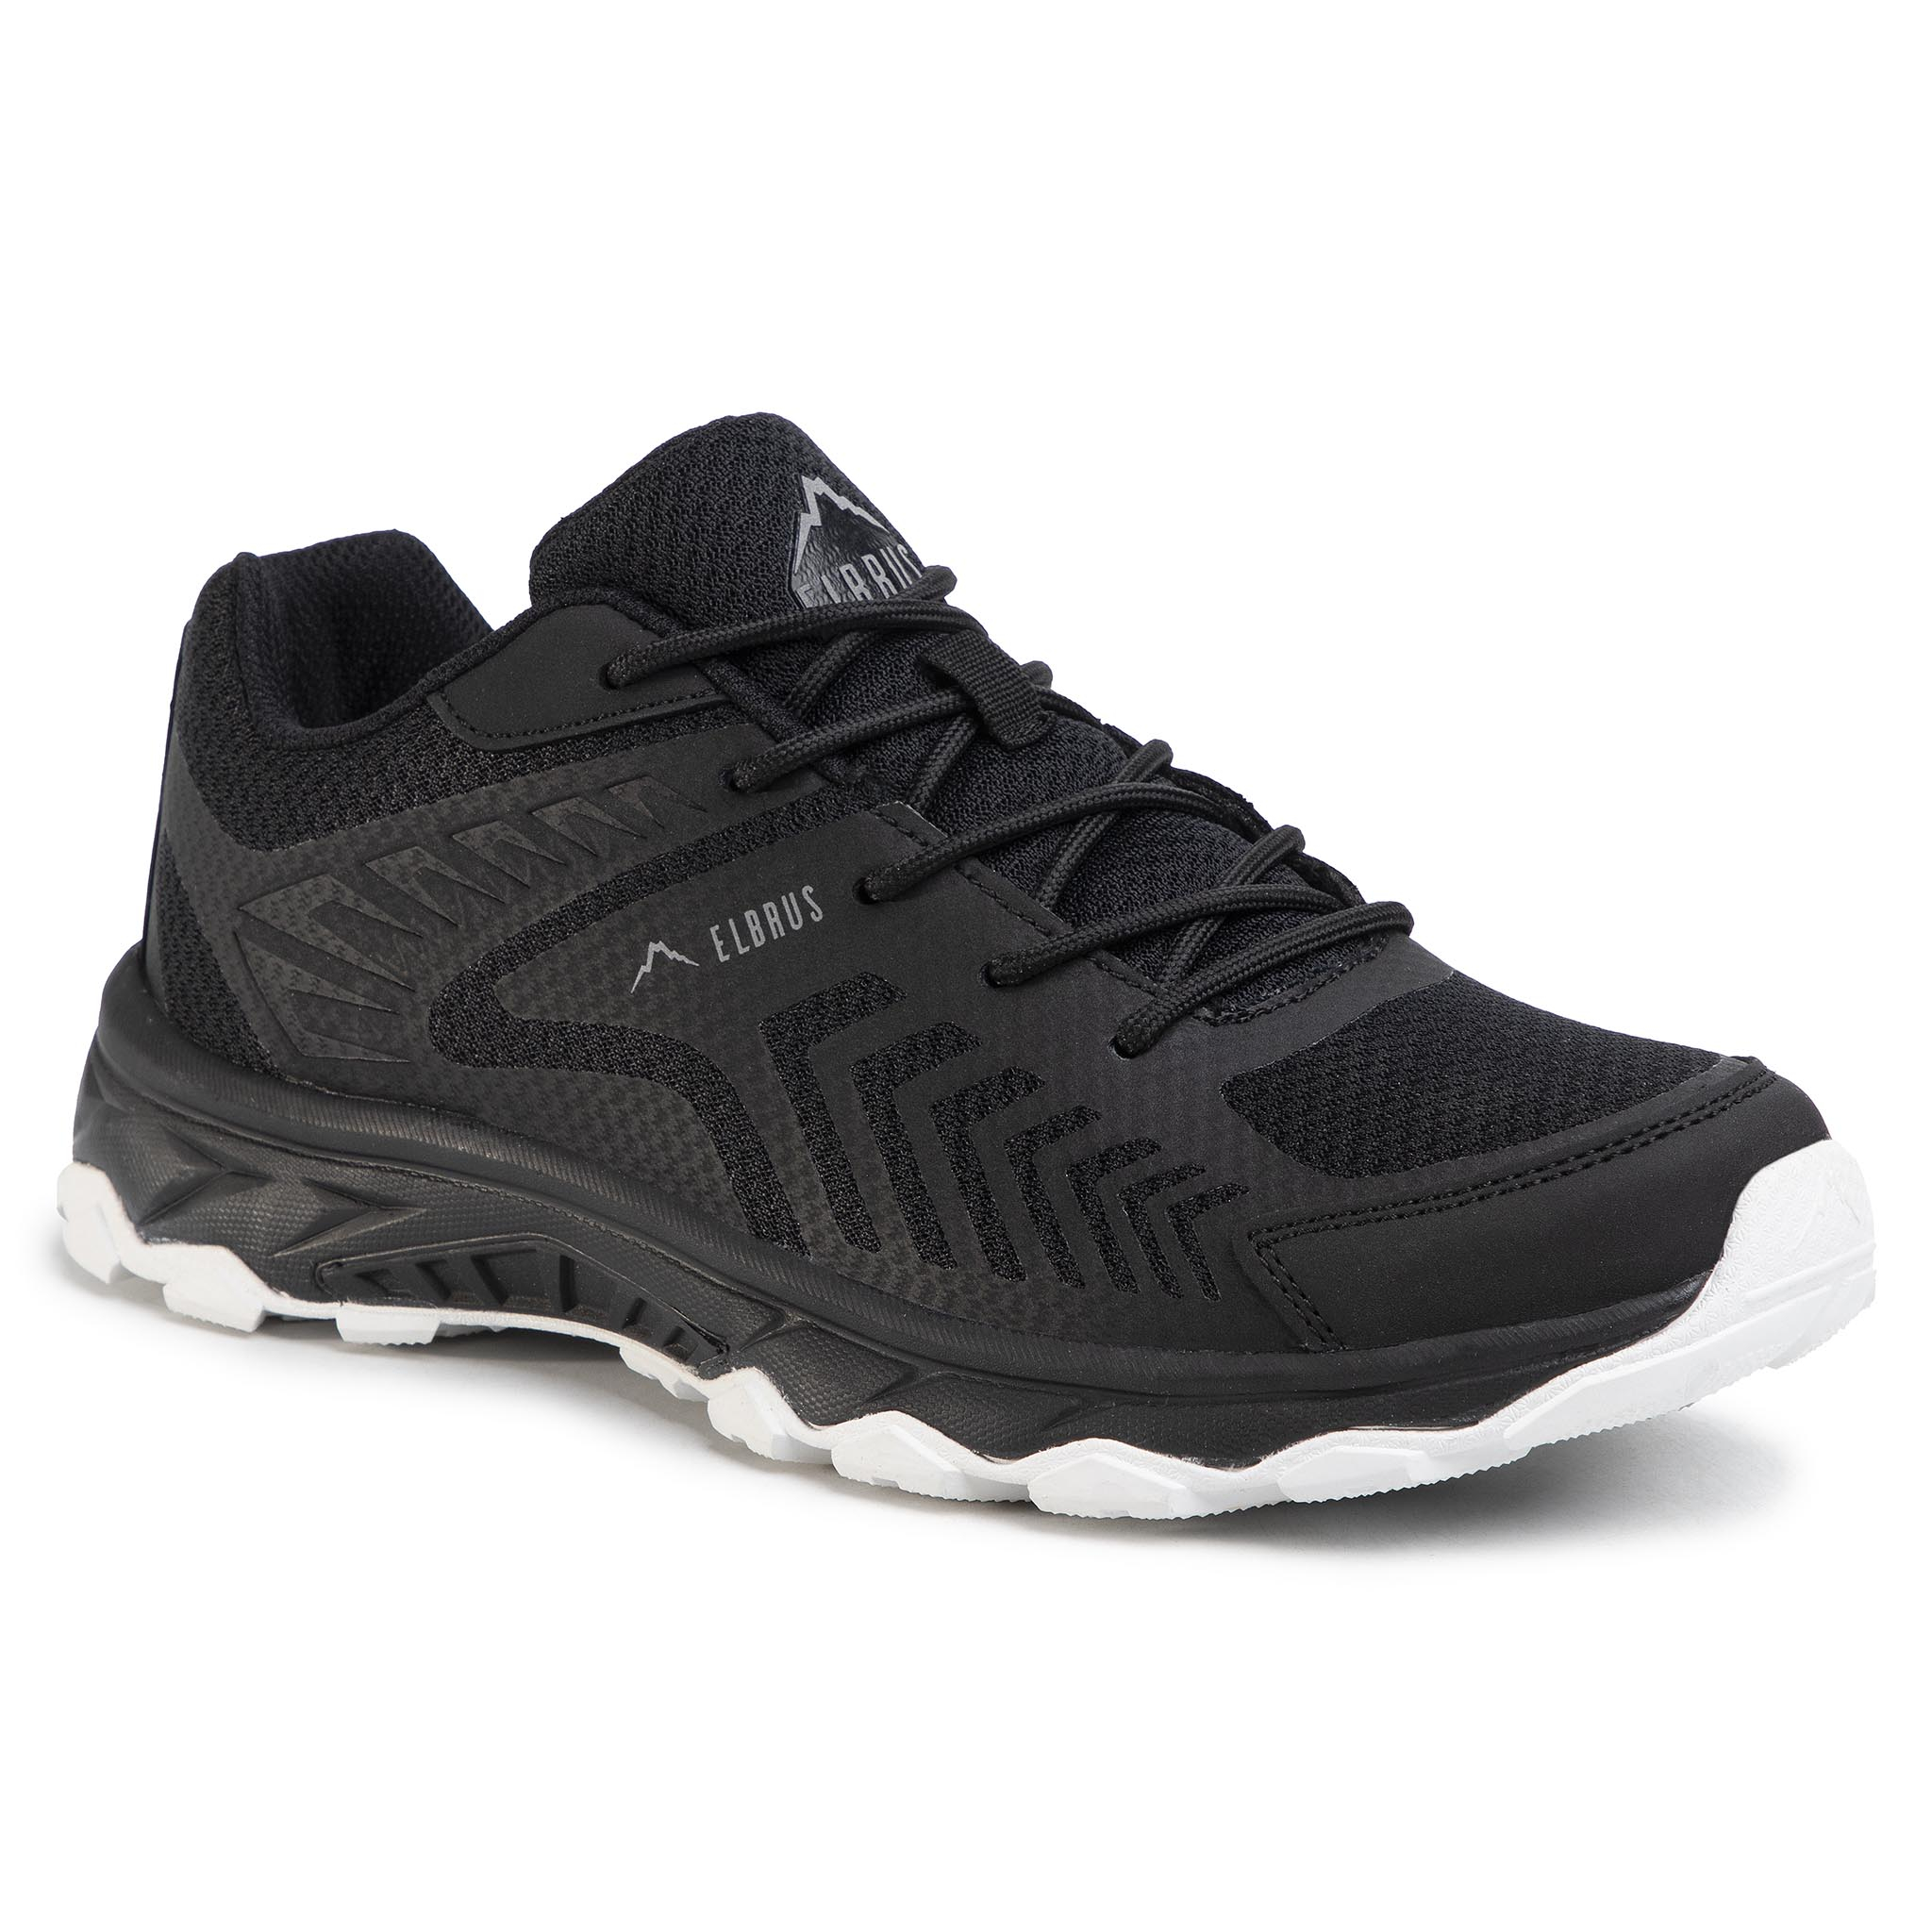 Batai ELBRUS - Temore Black/Light Grey